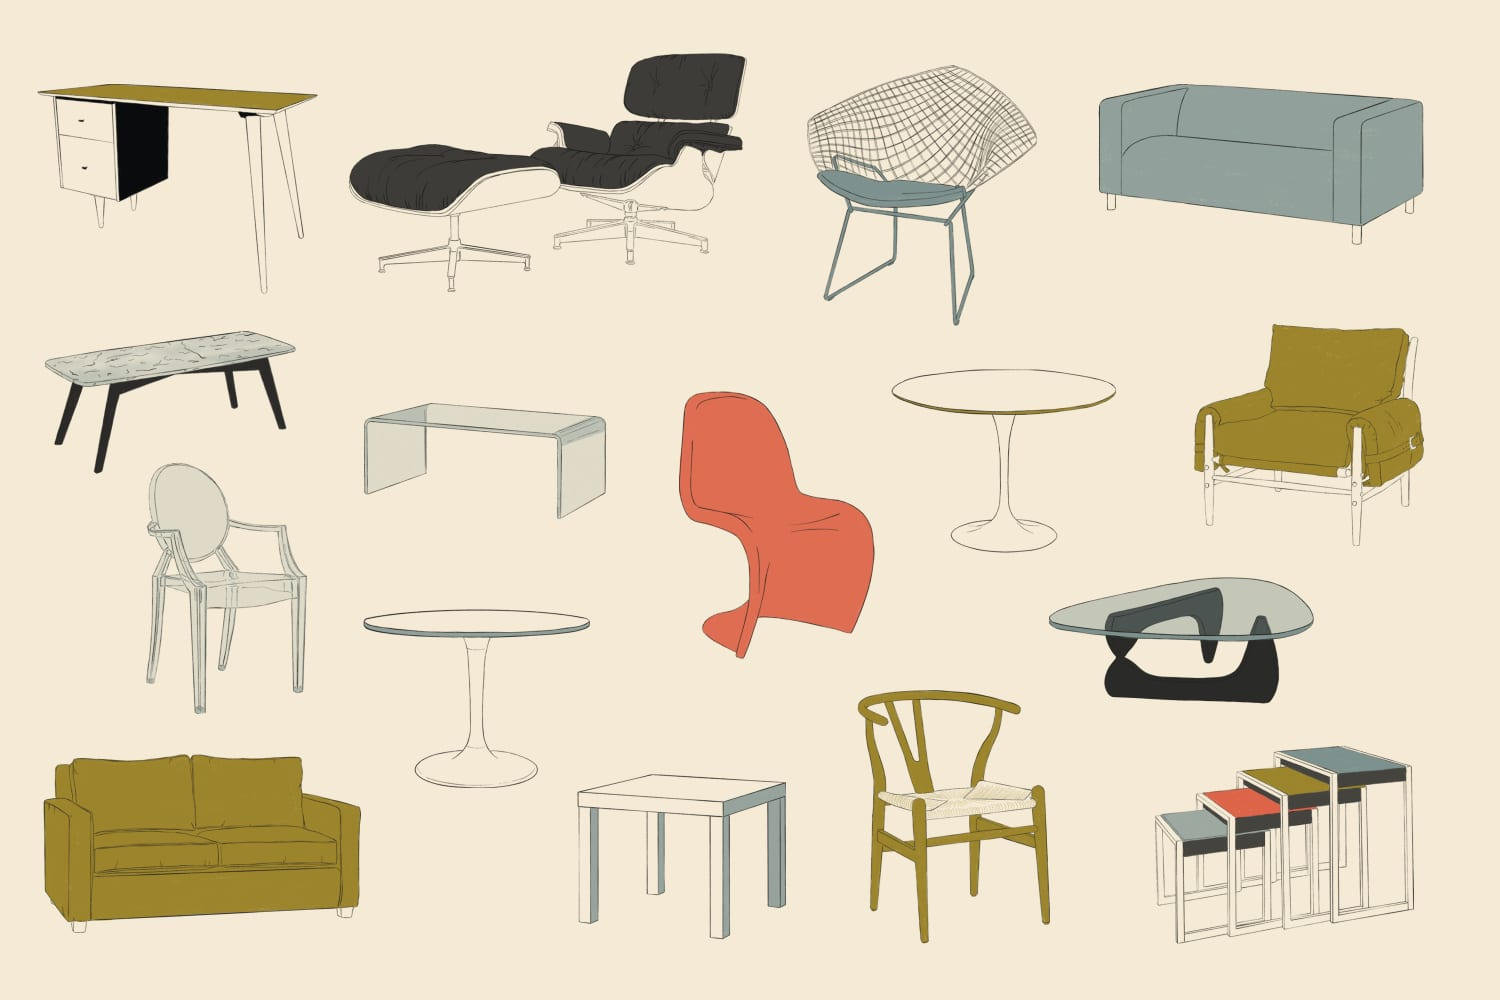 What's the Most Iconic Piece of Furniture? We Made a Bracket to Decide